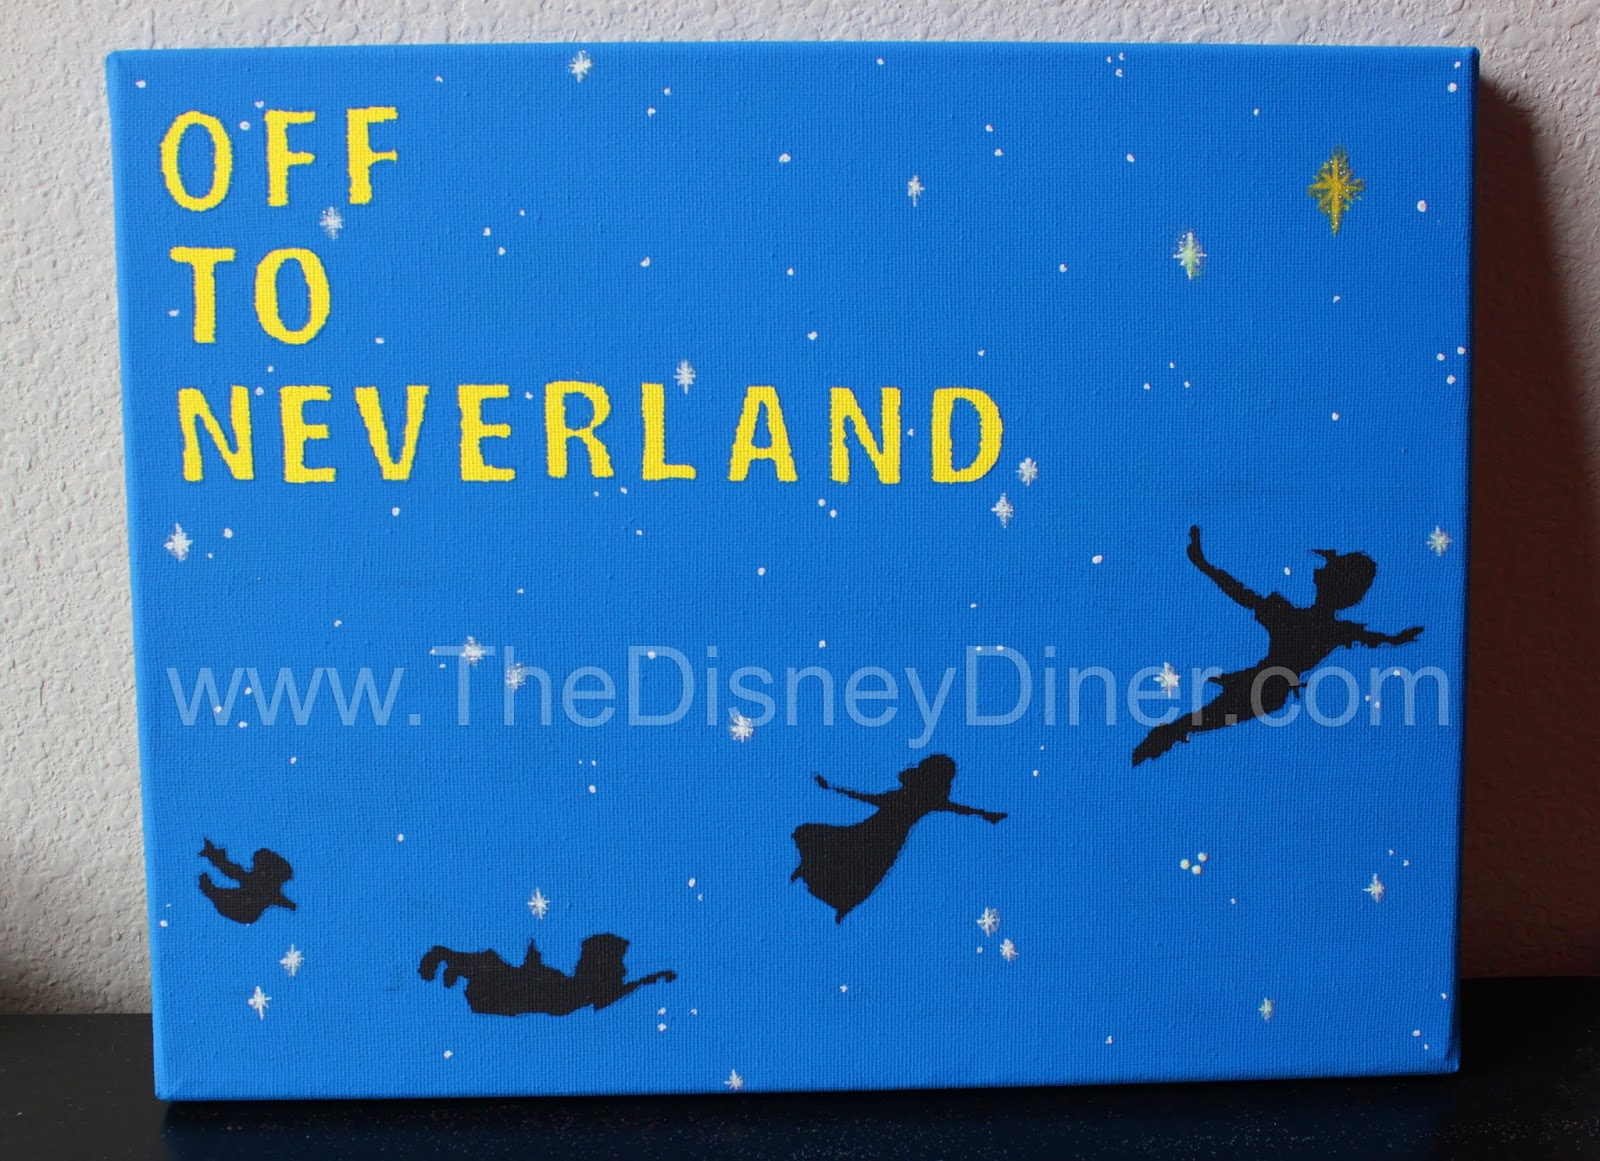 Peter Pan Off To Neverland Artwork Giveaway